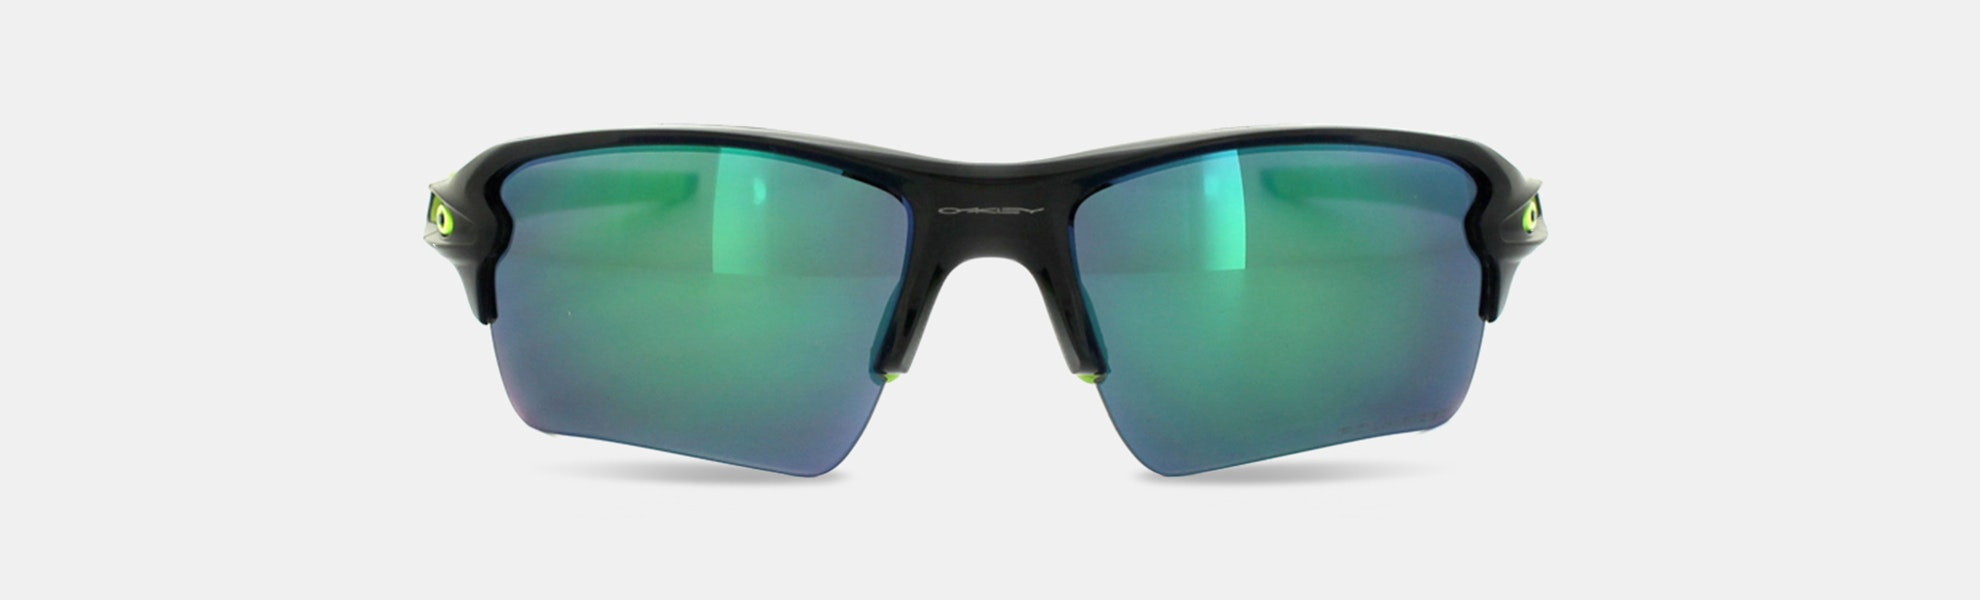 Oakley Polarized Flak 2.0 XL Sunglasses